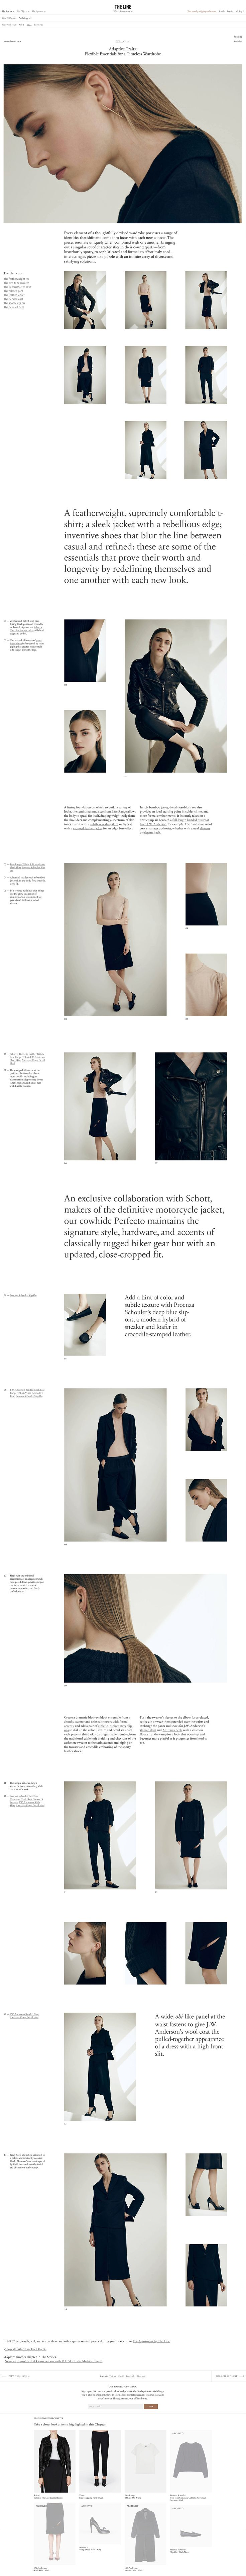 The Line - VOL. 1 CH. 59 on Behance